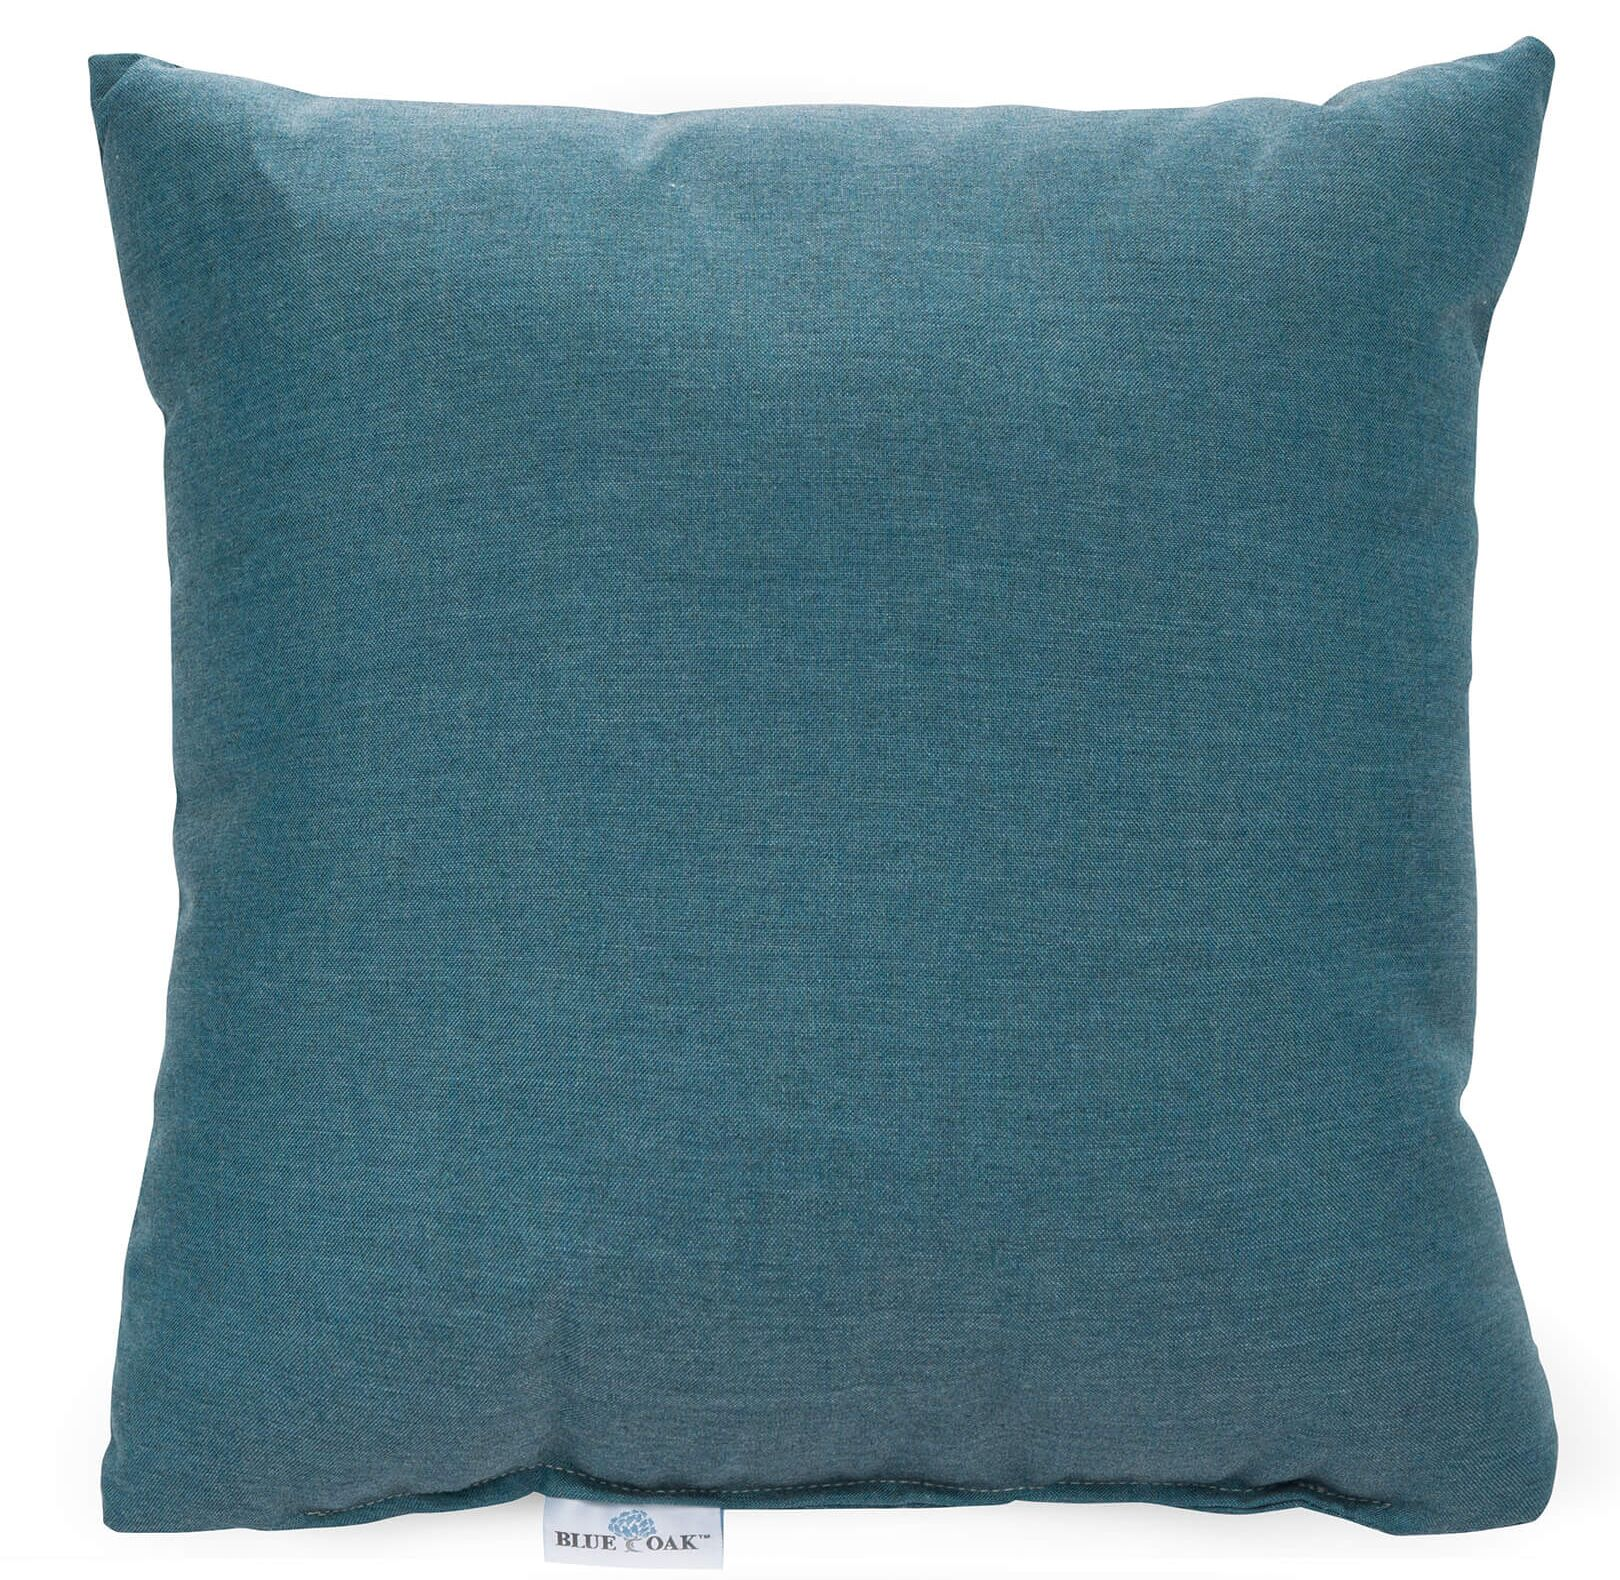 Cast Lagoon Outdoor Acrylic Pillow Color: Teal, Product Type: Throw Pillow